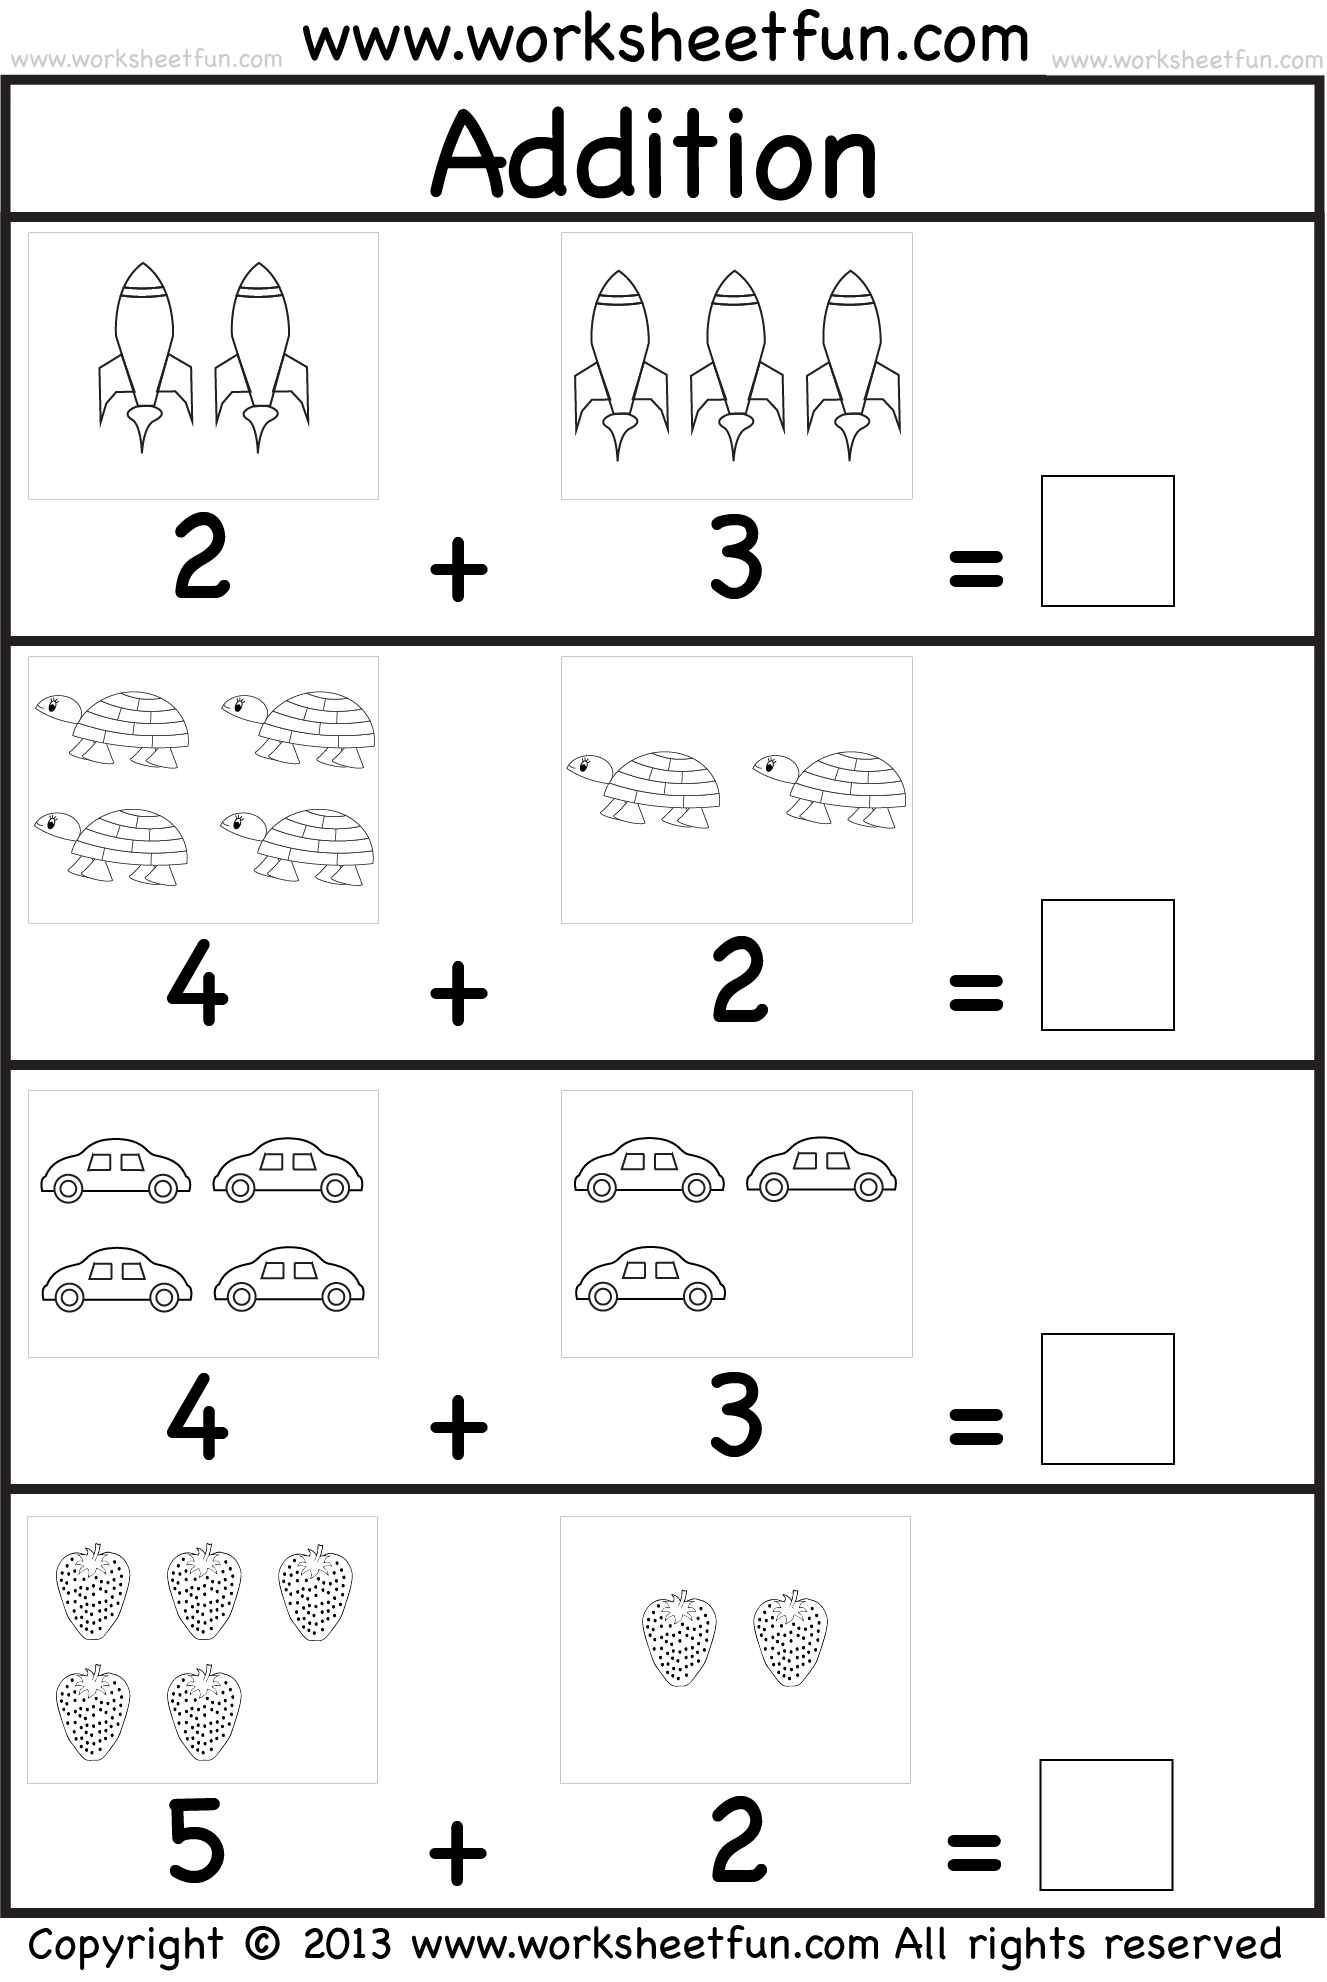 addition worksheet This site has great free worksheets for – Simple Math Worksheets Printable